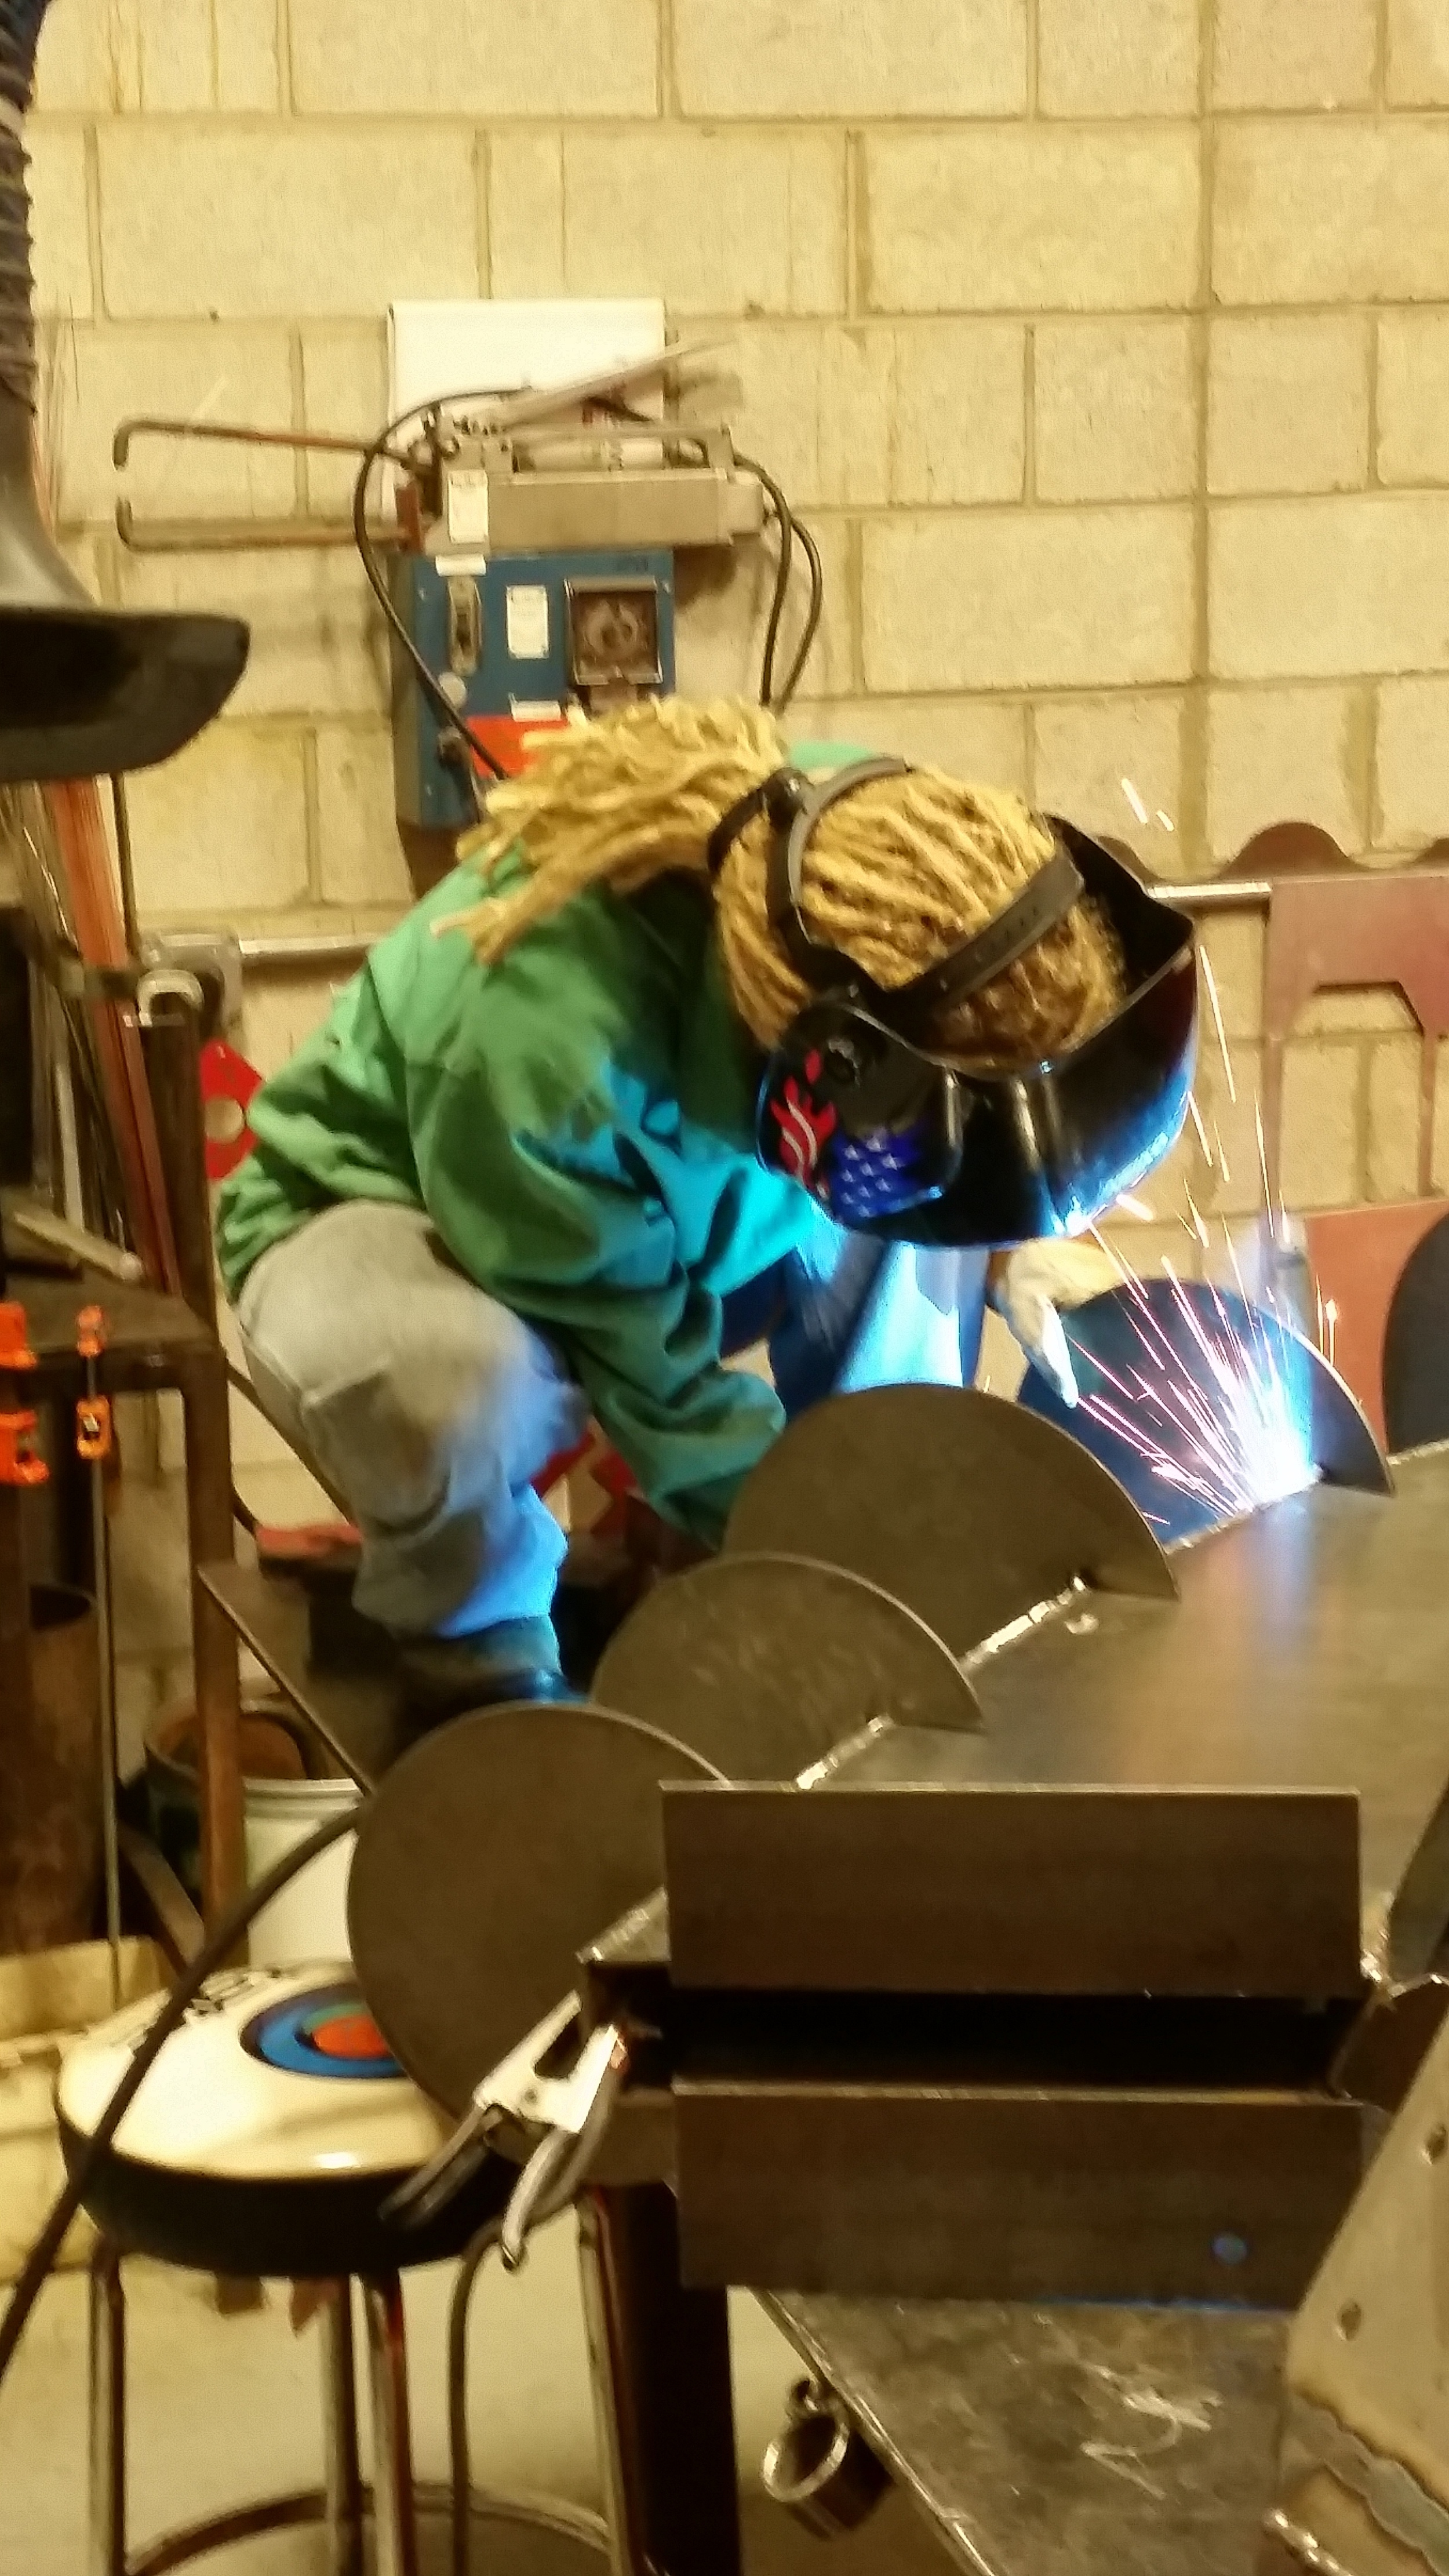 Me, welding parts together.